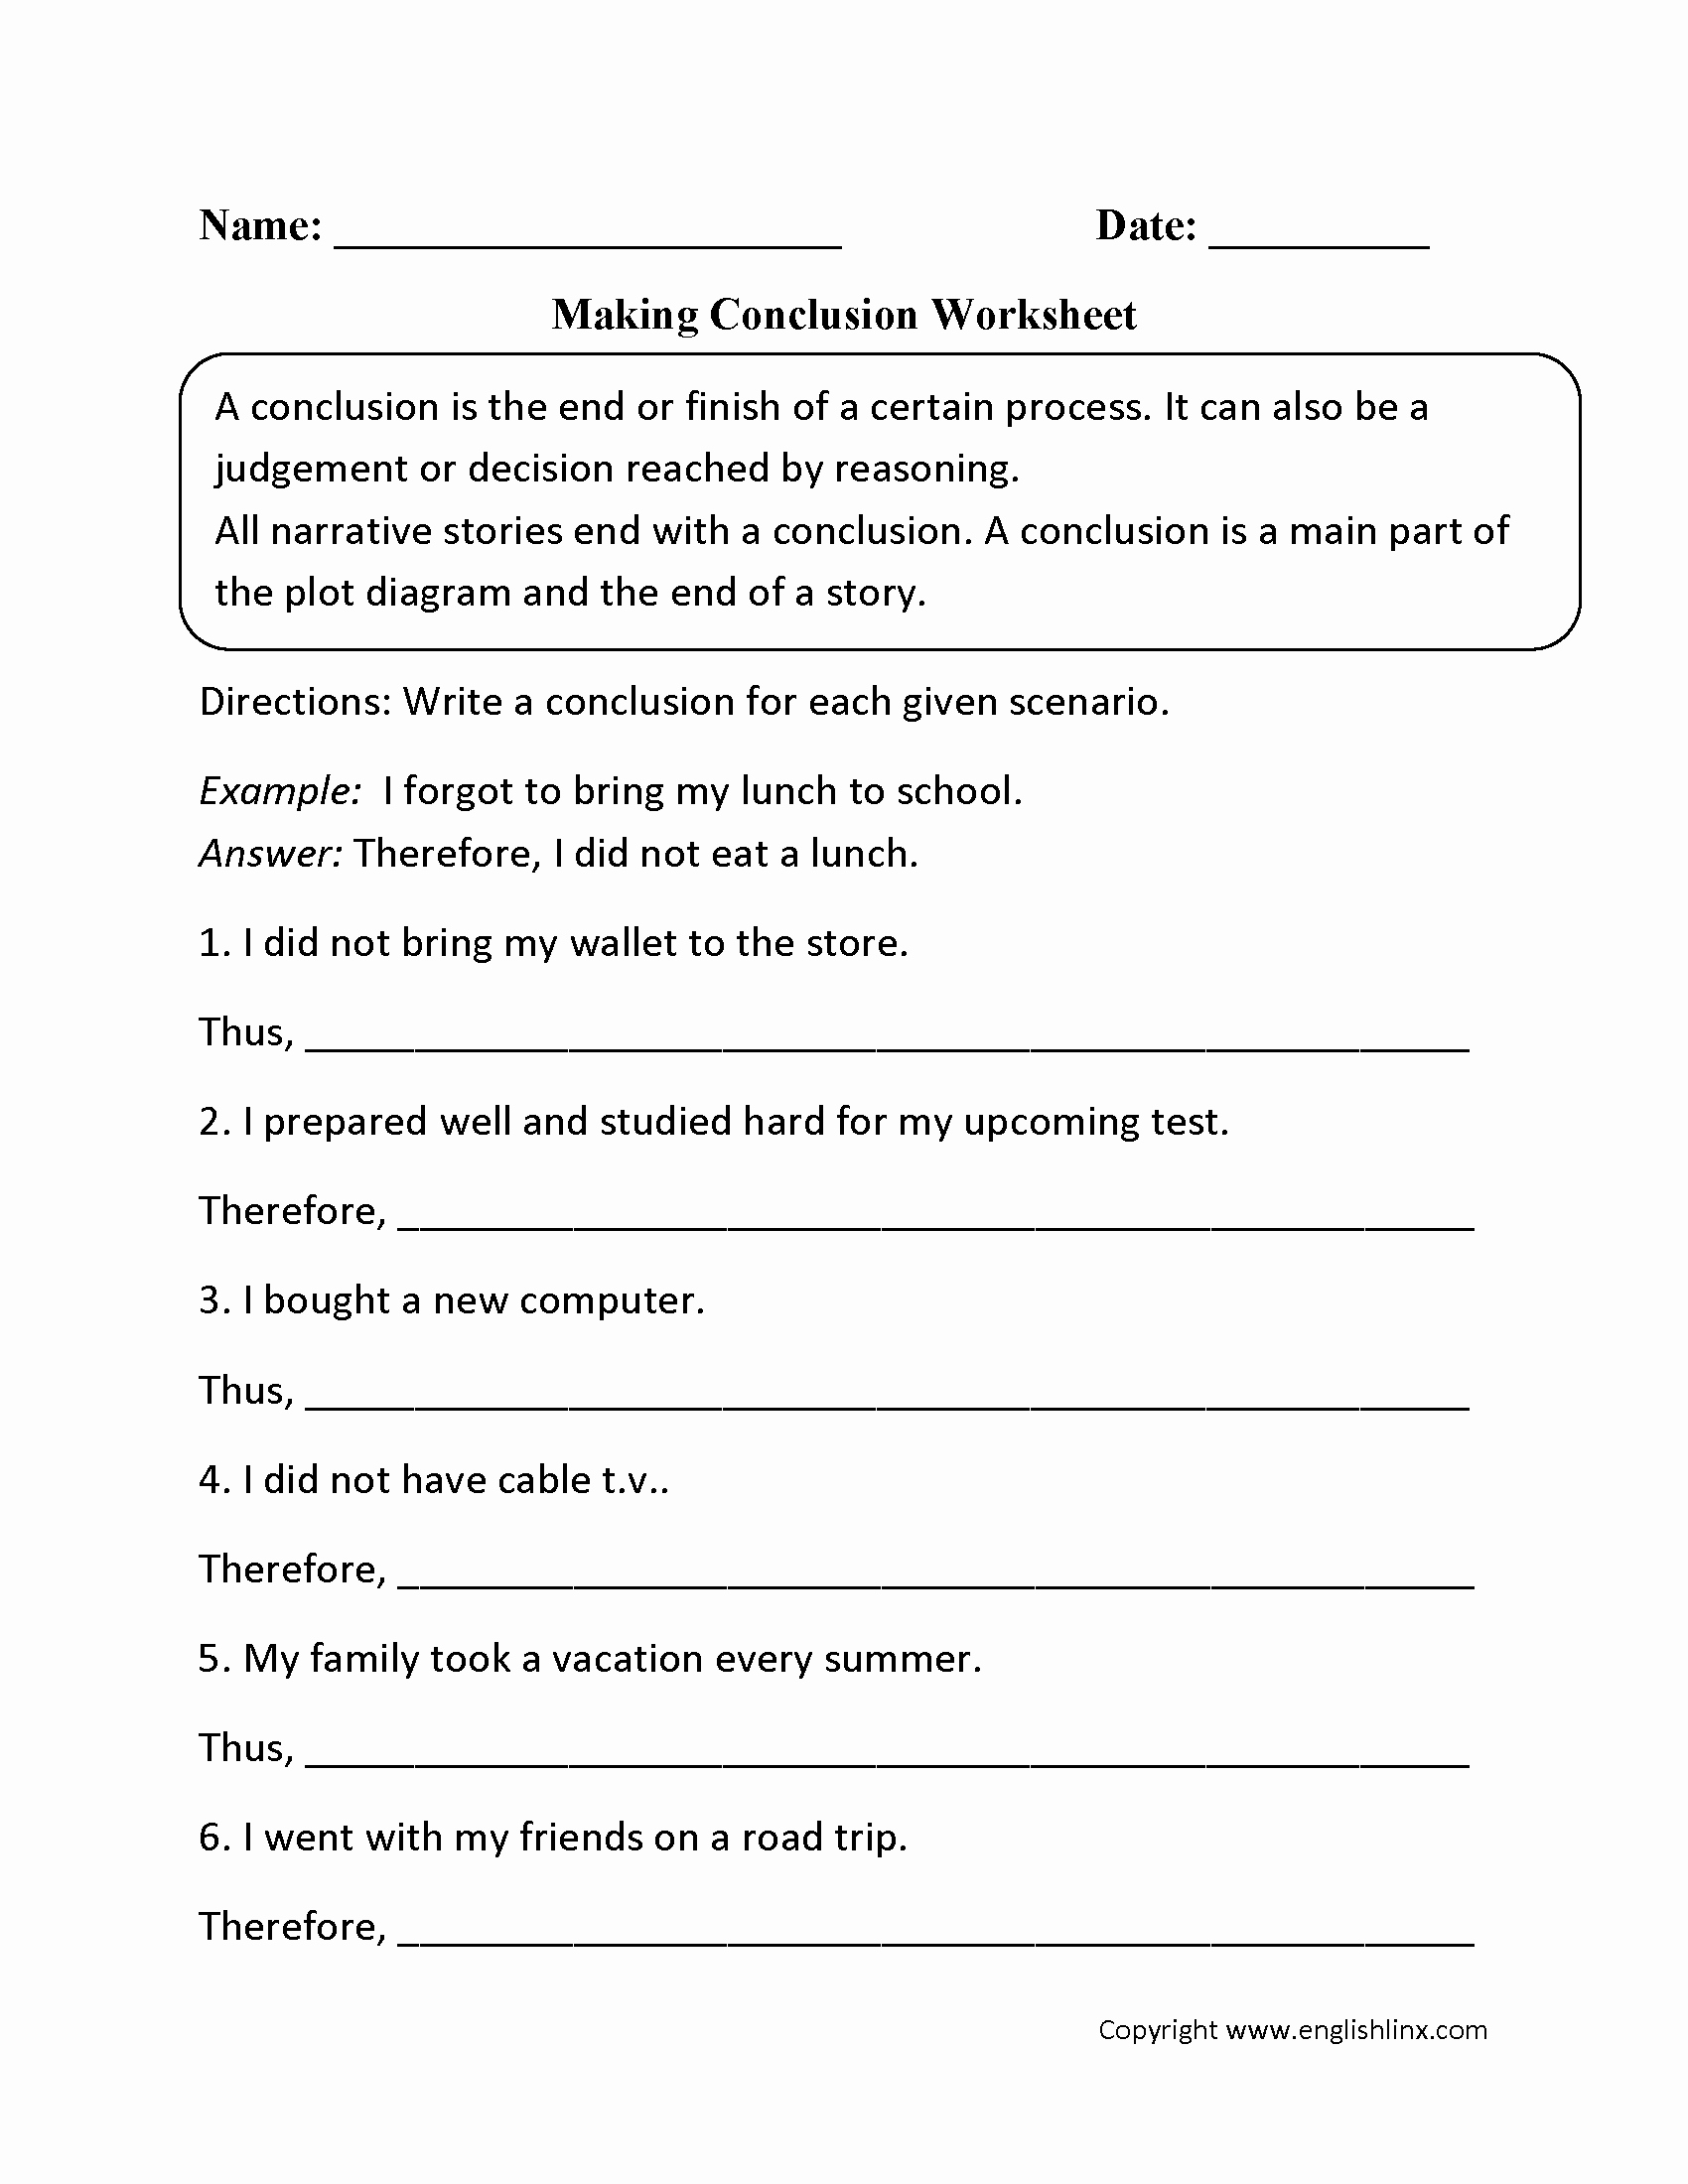 Making Conclusions Geometry Worksheet Answers Inspirational 9th Grade Writing Prompts Worksheets the Best Worksheets